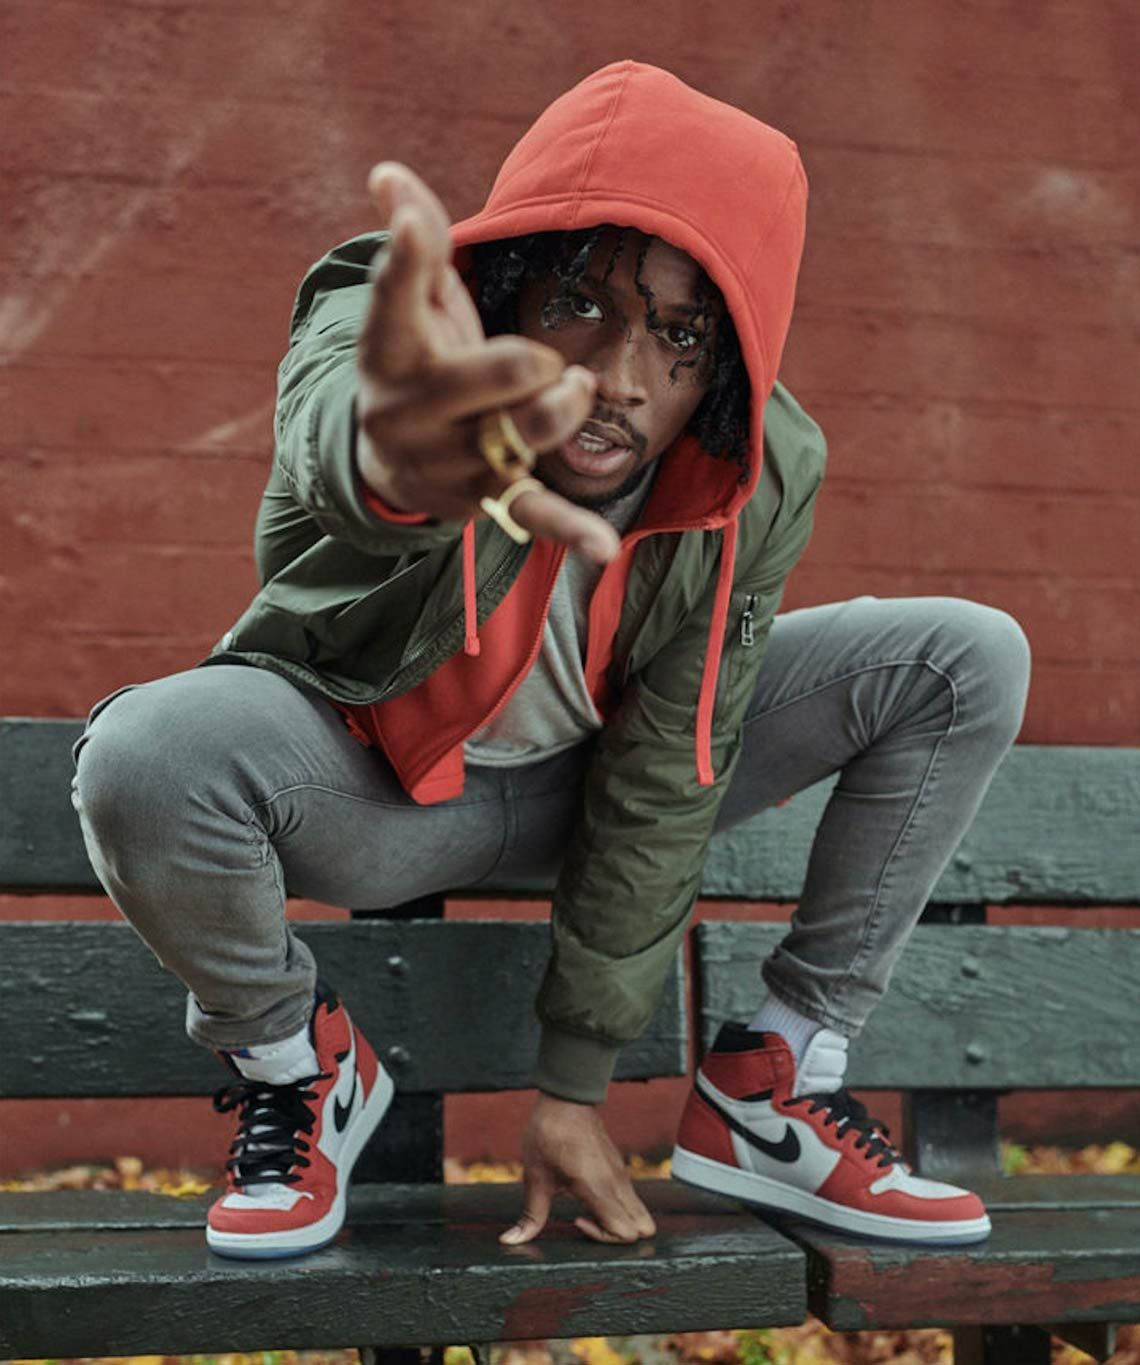 337b3017abf7ec Spider-Verse Actor Shameik Moore Talks Air Jordan 1 And More